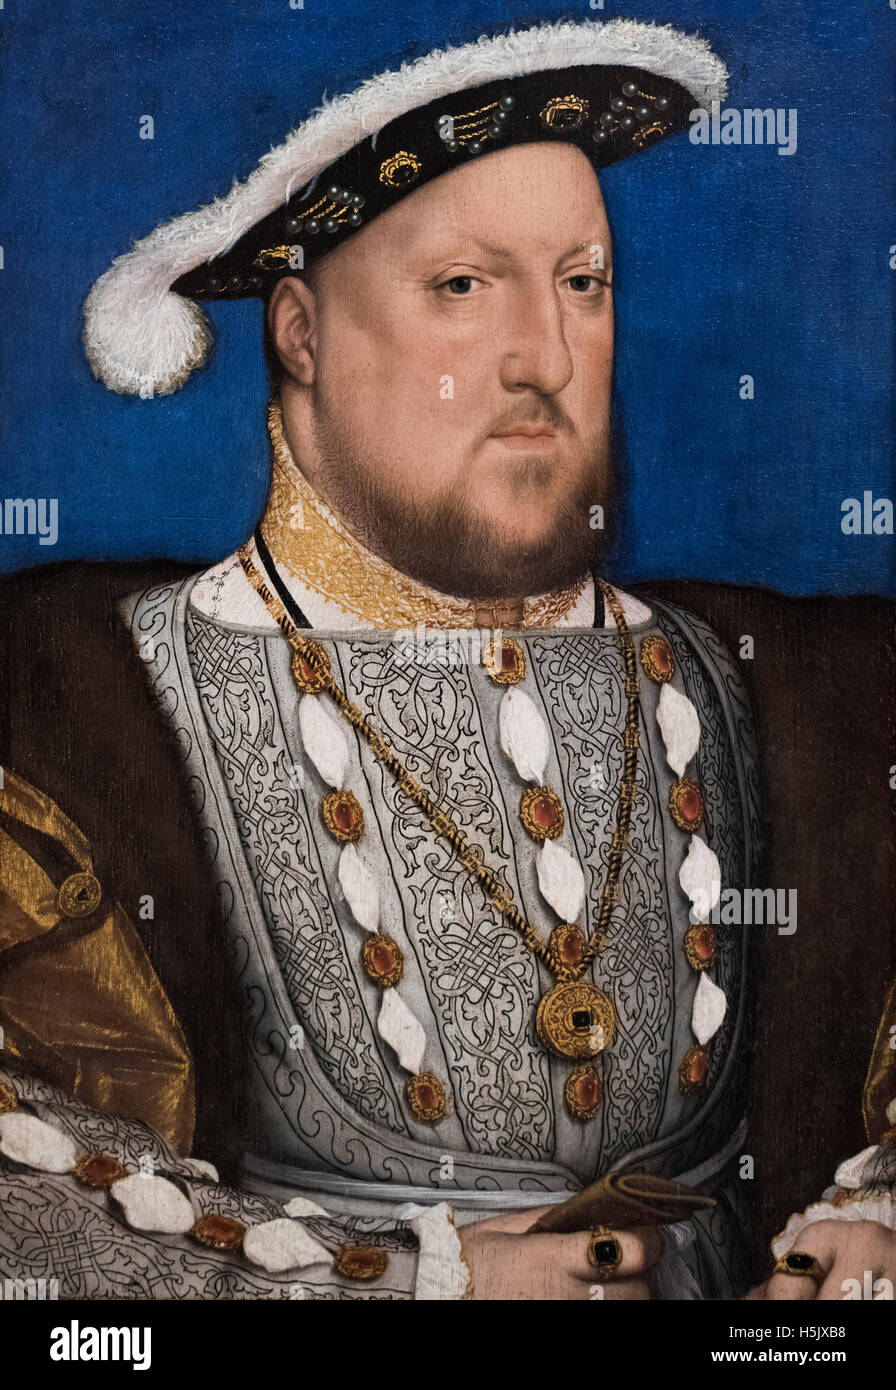 Hans Holbein the Younger (1497/98-1543), Portrait of King Henry VIII (1491-1547), ca. 1534-1536. - Stock Image